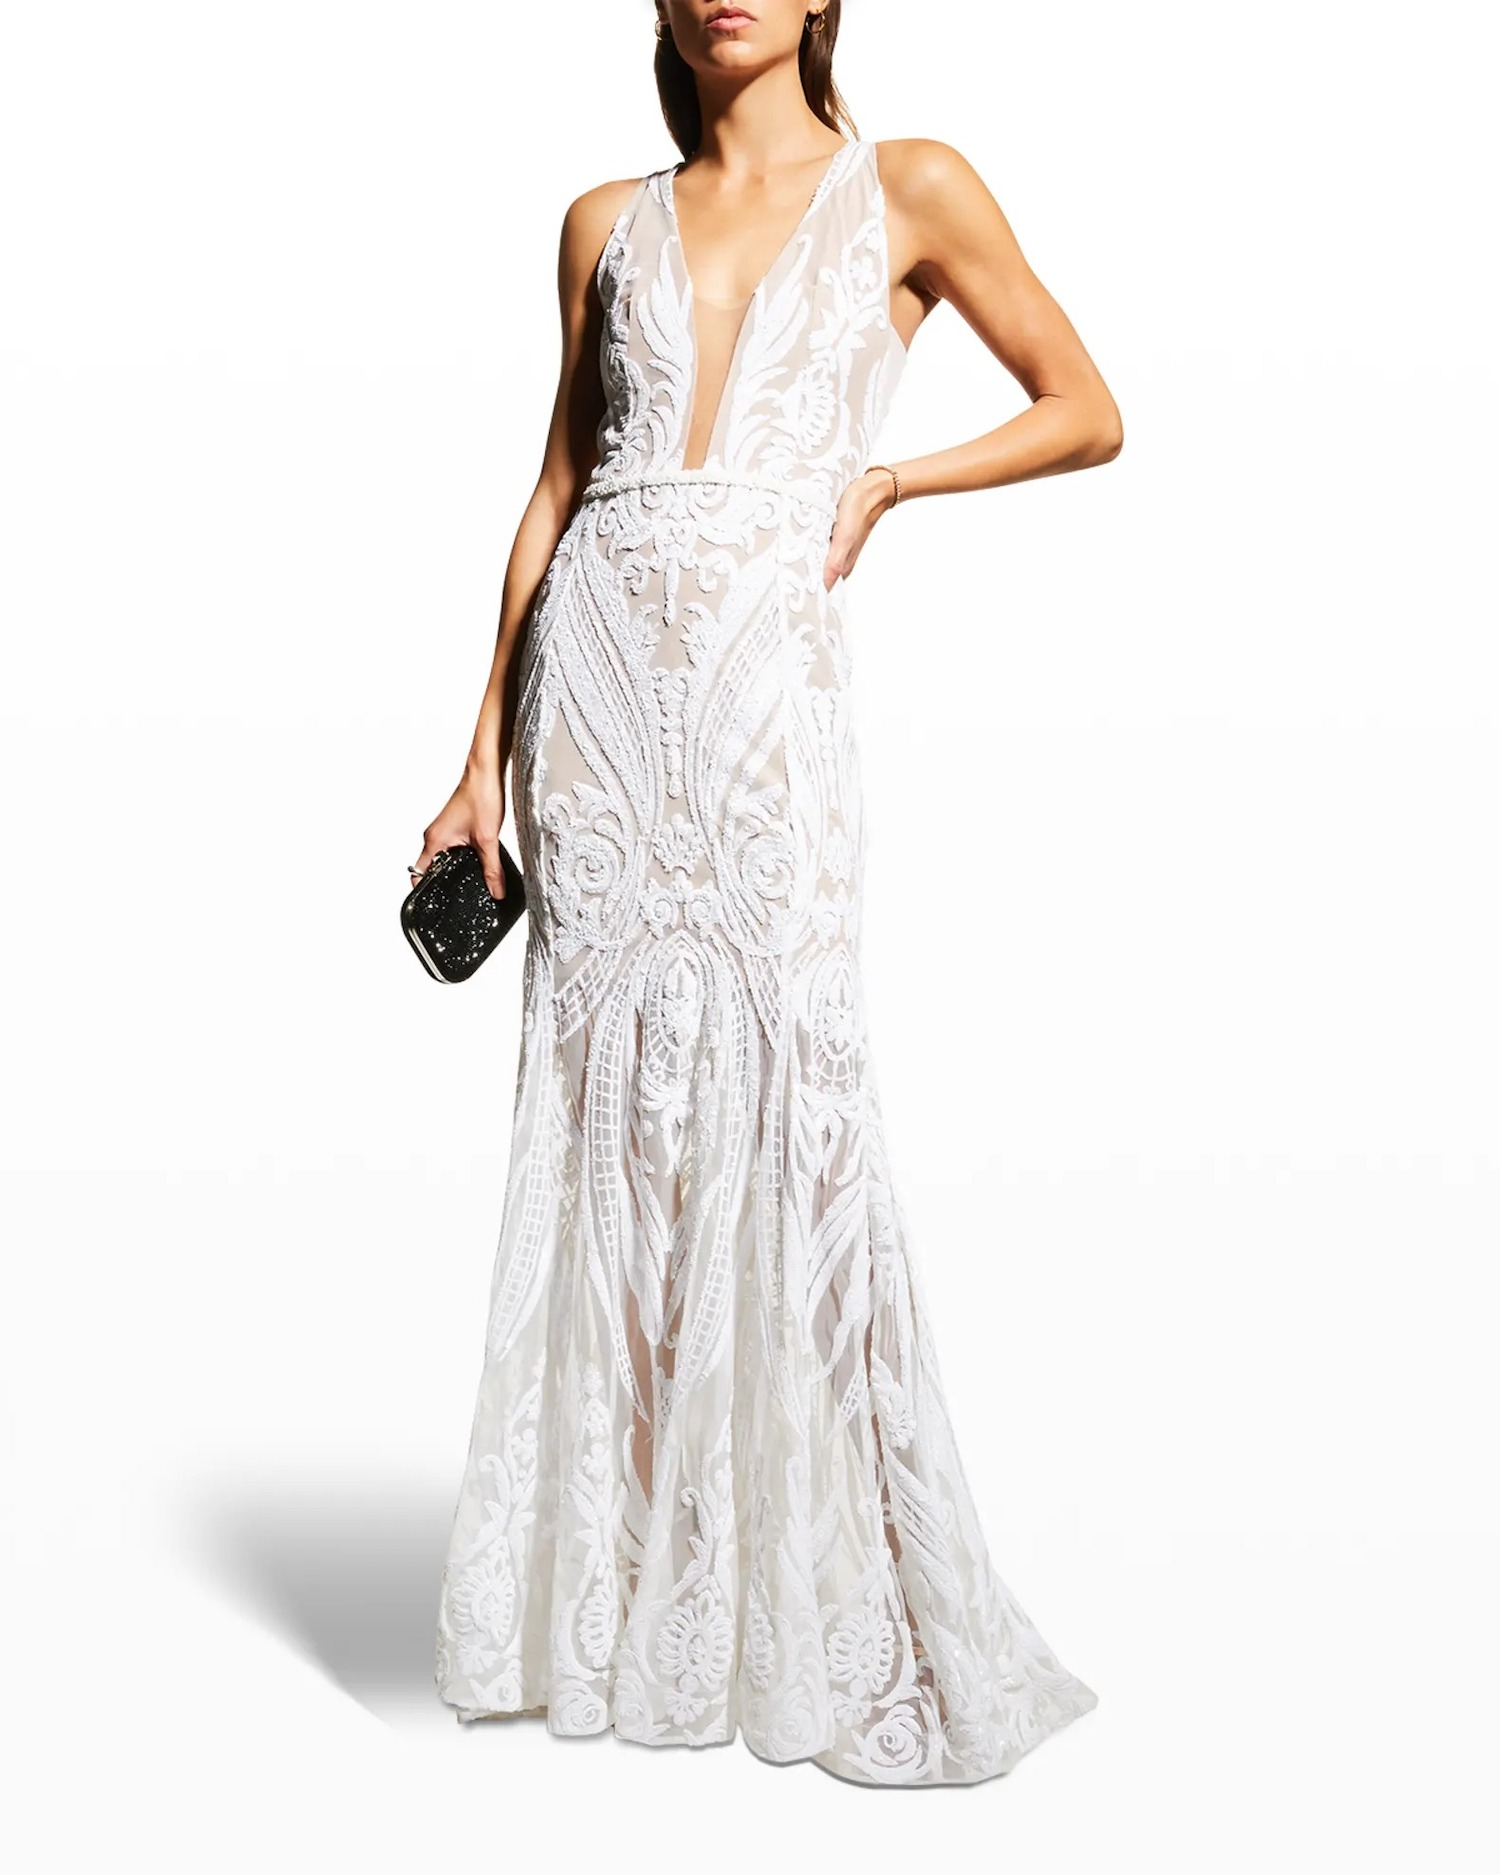 plunging neckline bohemian lace online wedding dress from Neiman Marcus